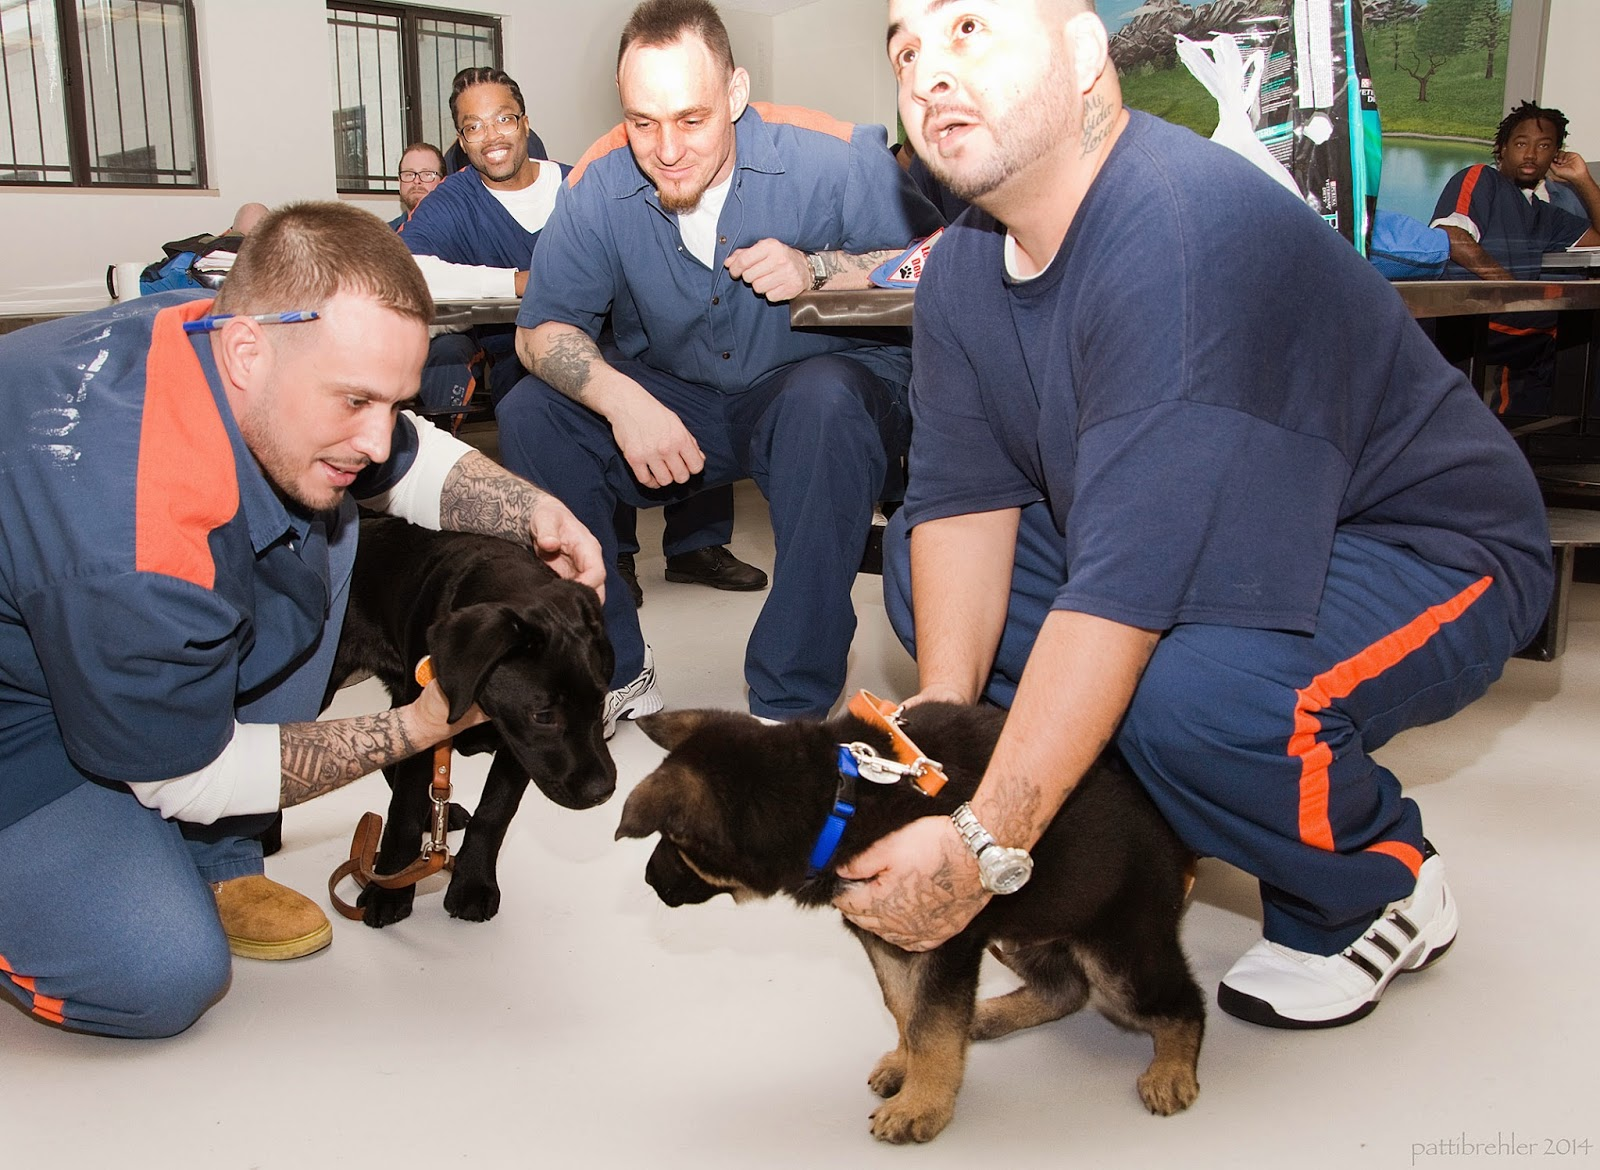 There are three men in the foreground dressed in blue prison  uniforms. The one on the left is kneeling on his right knee and is holding a black lab puppy back from reaching toward a smaller german shepherd puppy being held by a man on the right, he is squatting down and looking up toward someone out of range of the camera to the left. Both puppies have their feet on the painted cement floor. A third man is sitting on a stool between the other two men and he is looking down toward the puppies. There are two men sitting down in the background.